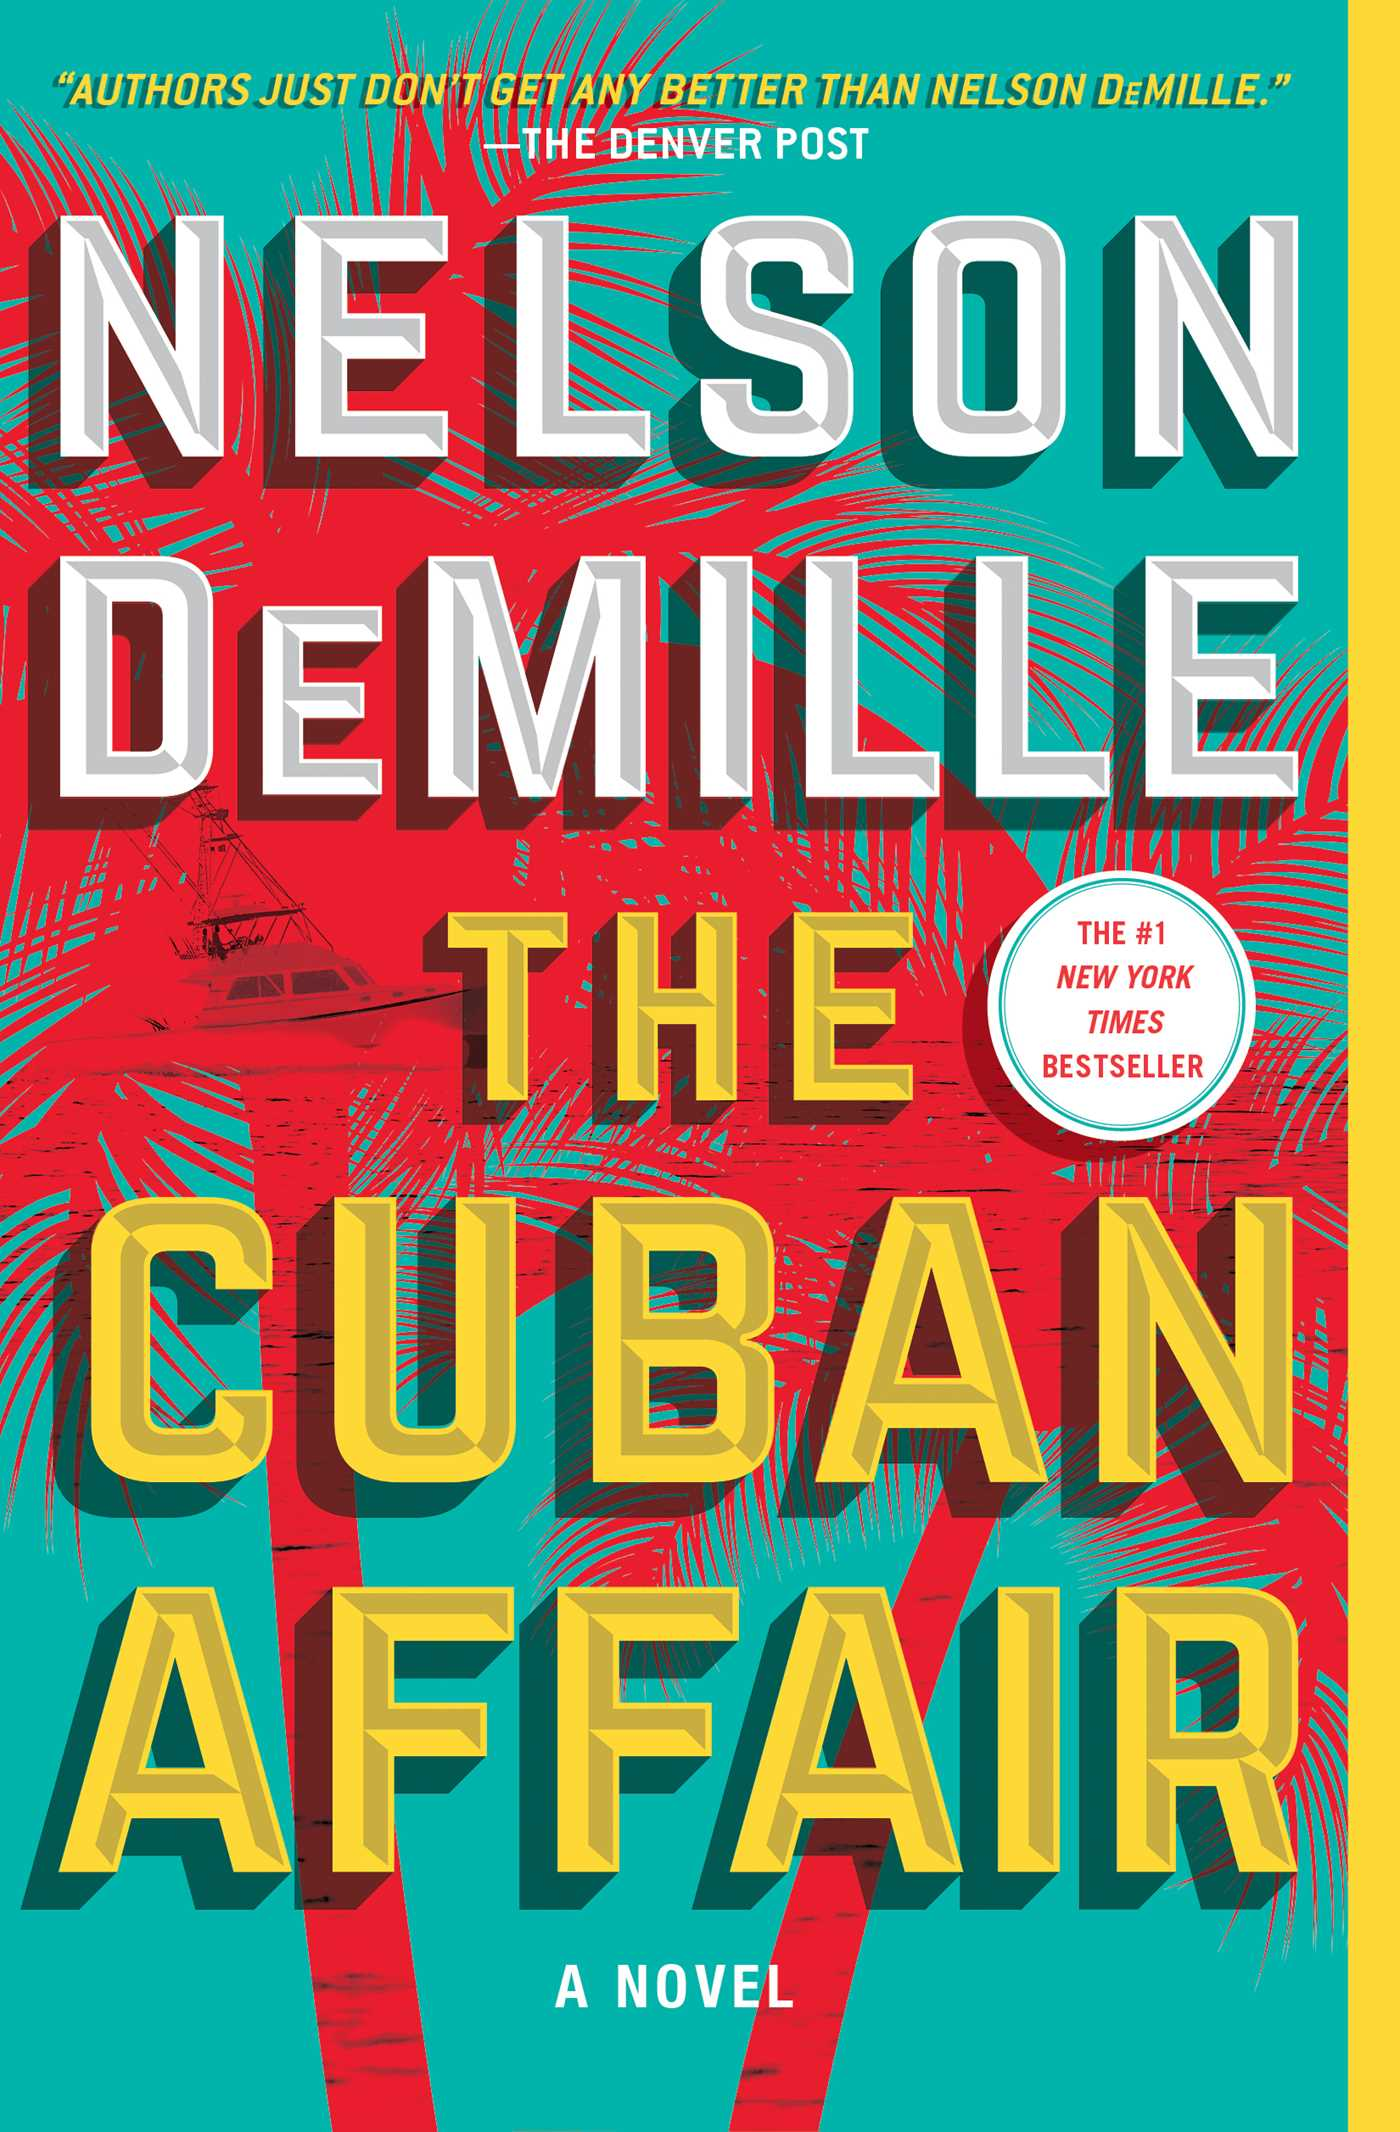 The cuban affair 9781501199011 hr